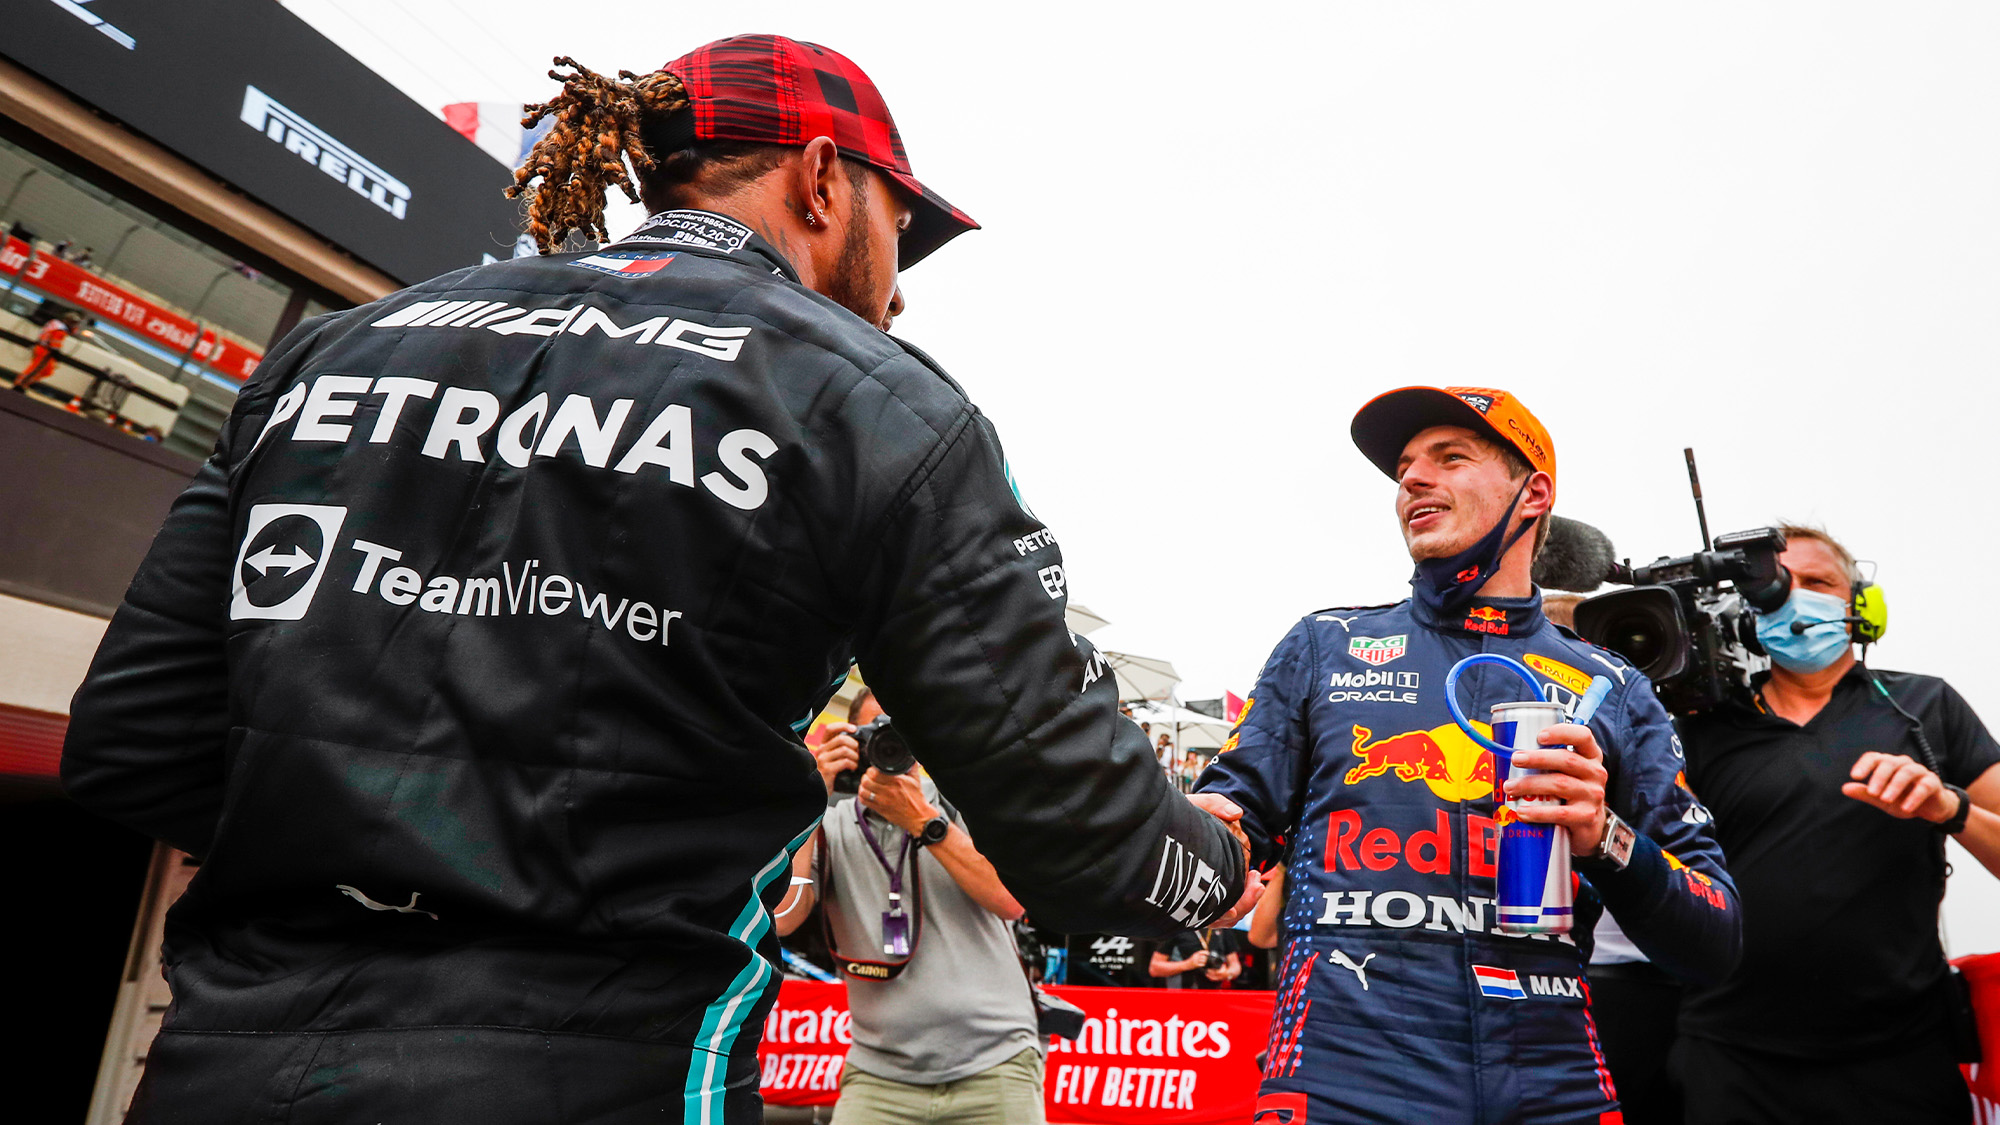 Lewis Hamilton shakes Max Verstappen's hand at the 2021 French Grand Prix